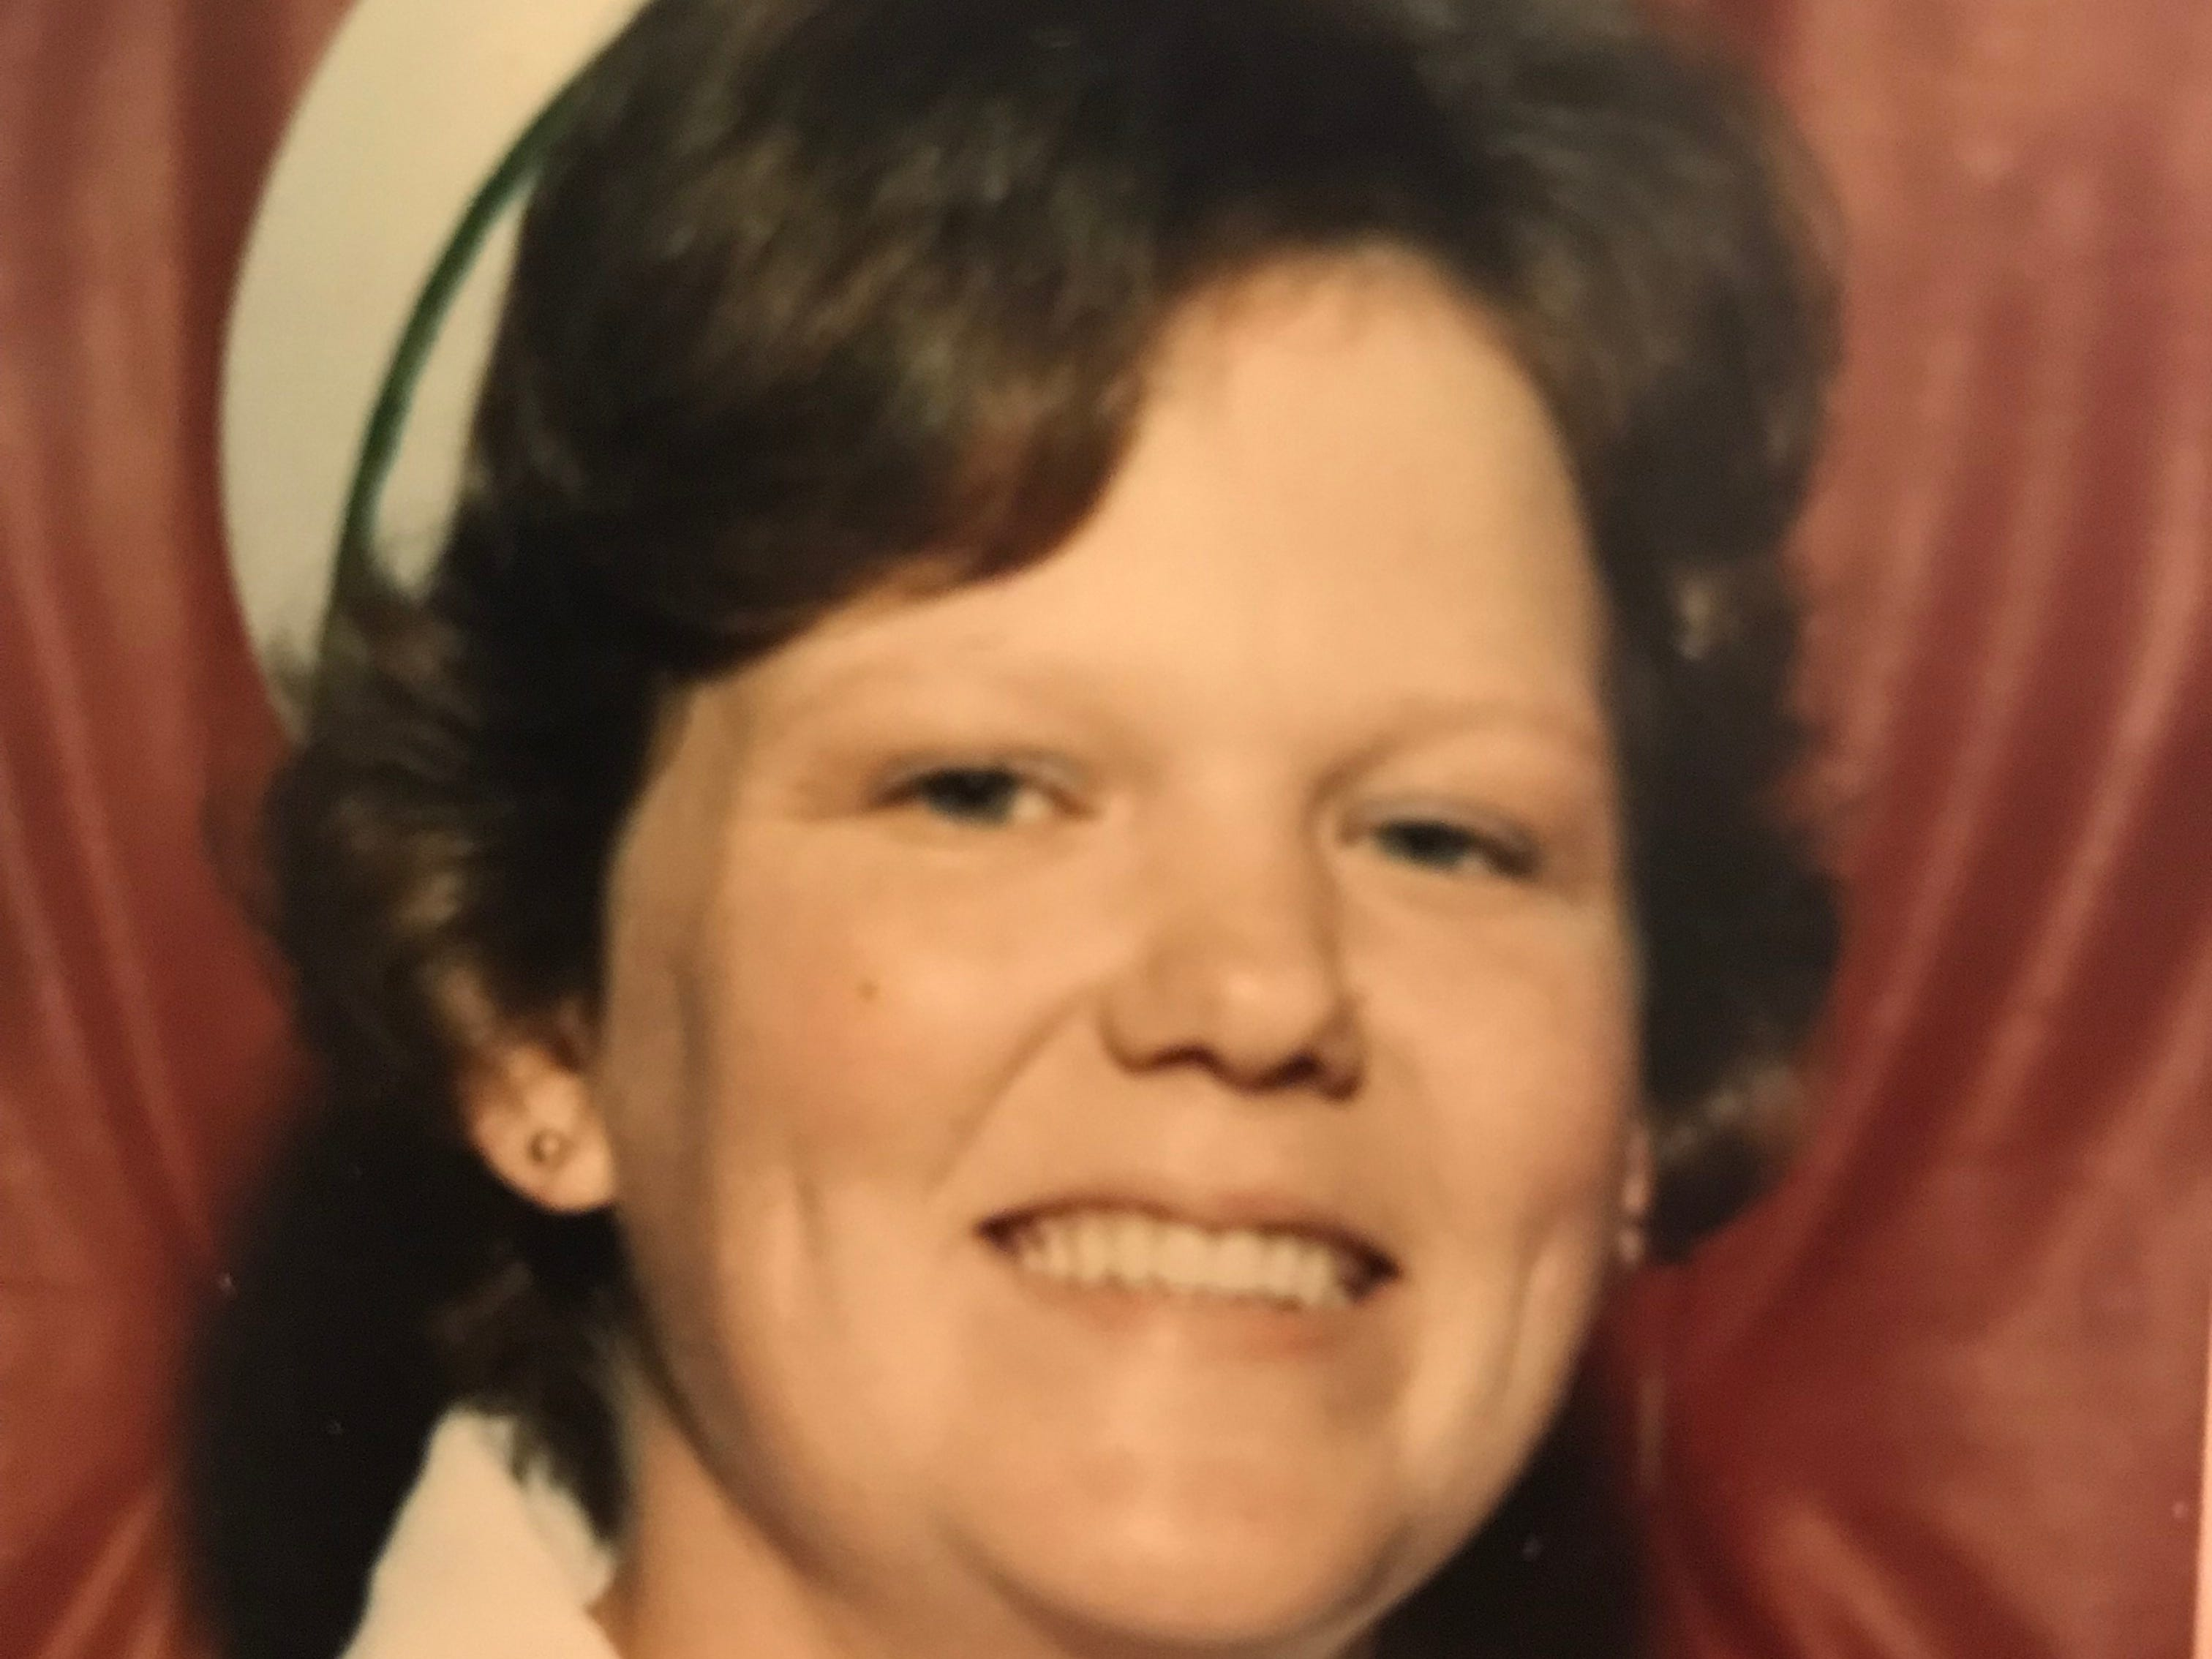 Stephanie Smith was a nurse at UHS Wilson Hospital, Absolut Care and Broome Developmental Center.